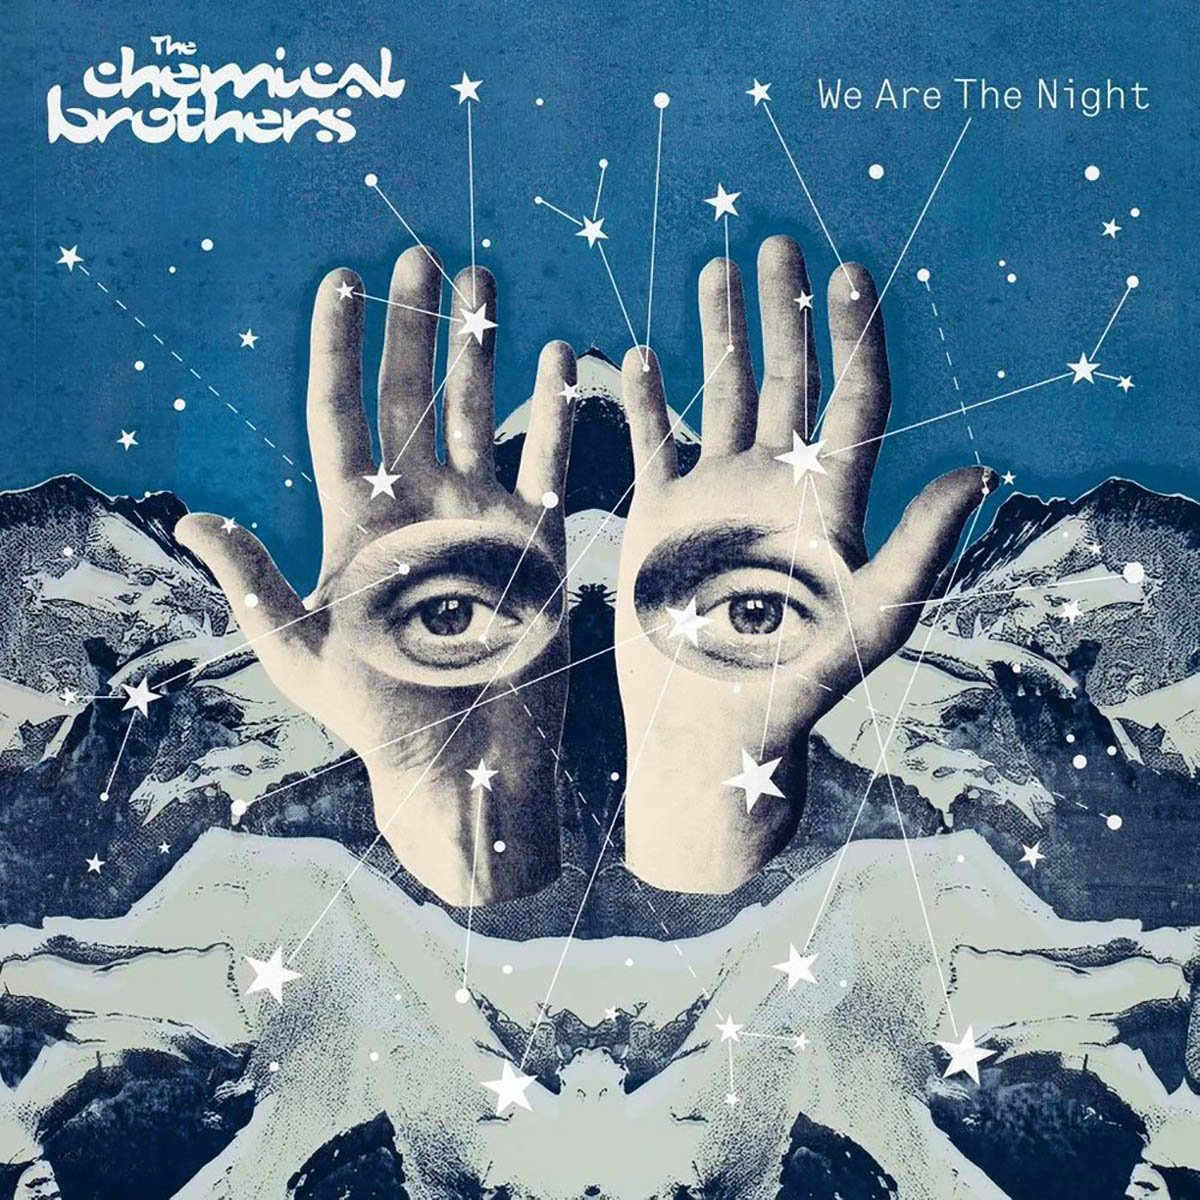 The Chemical Brothers, We Are the Night